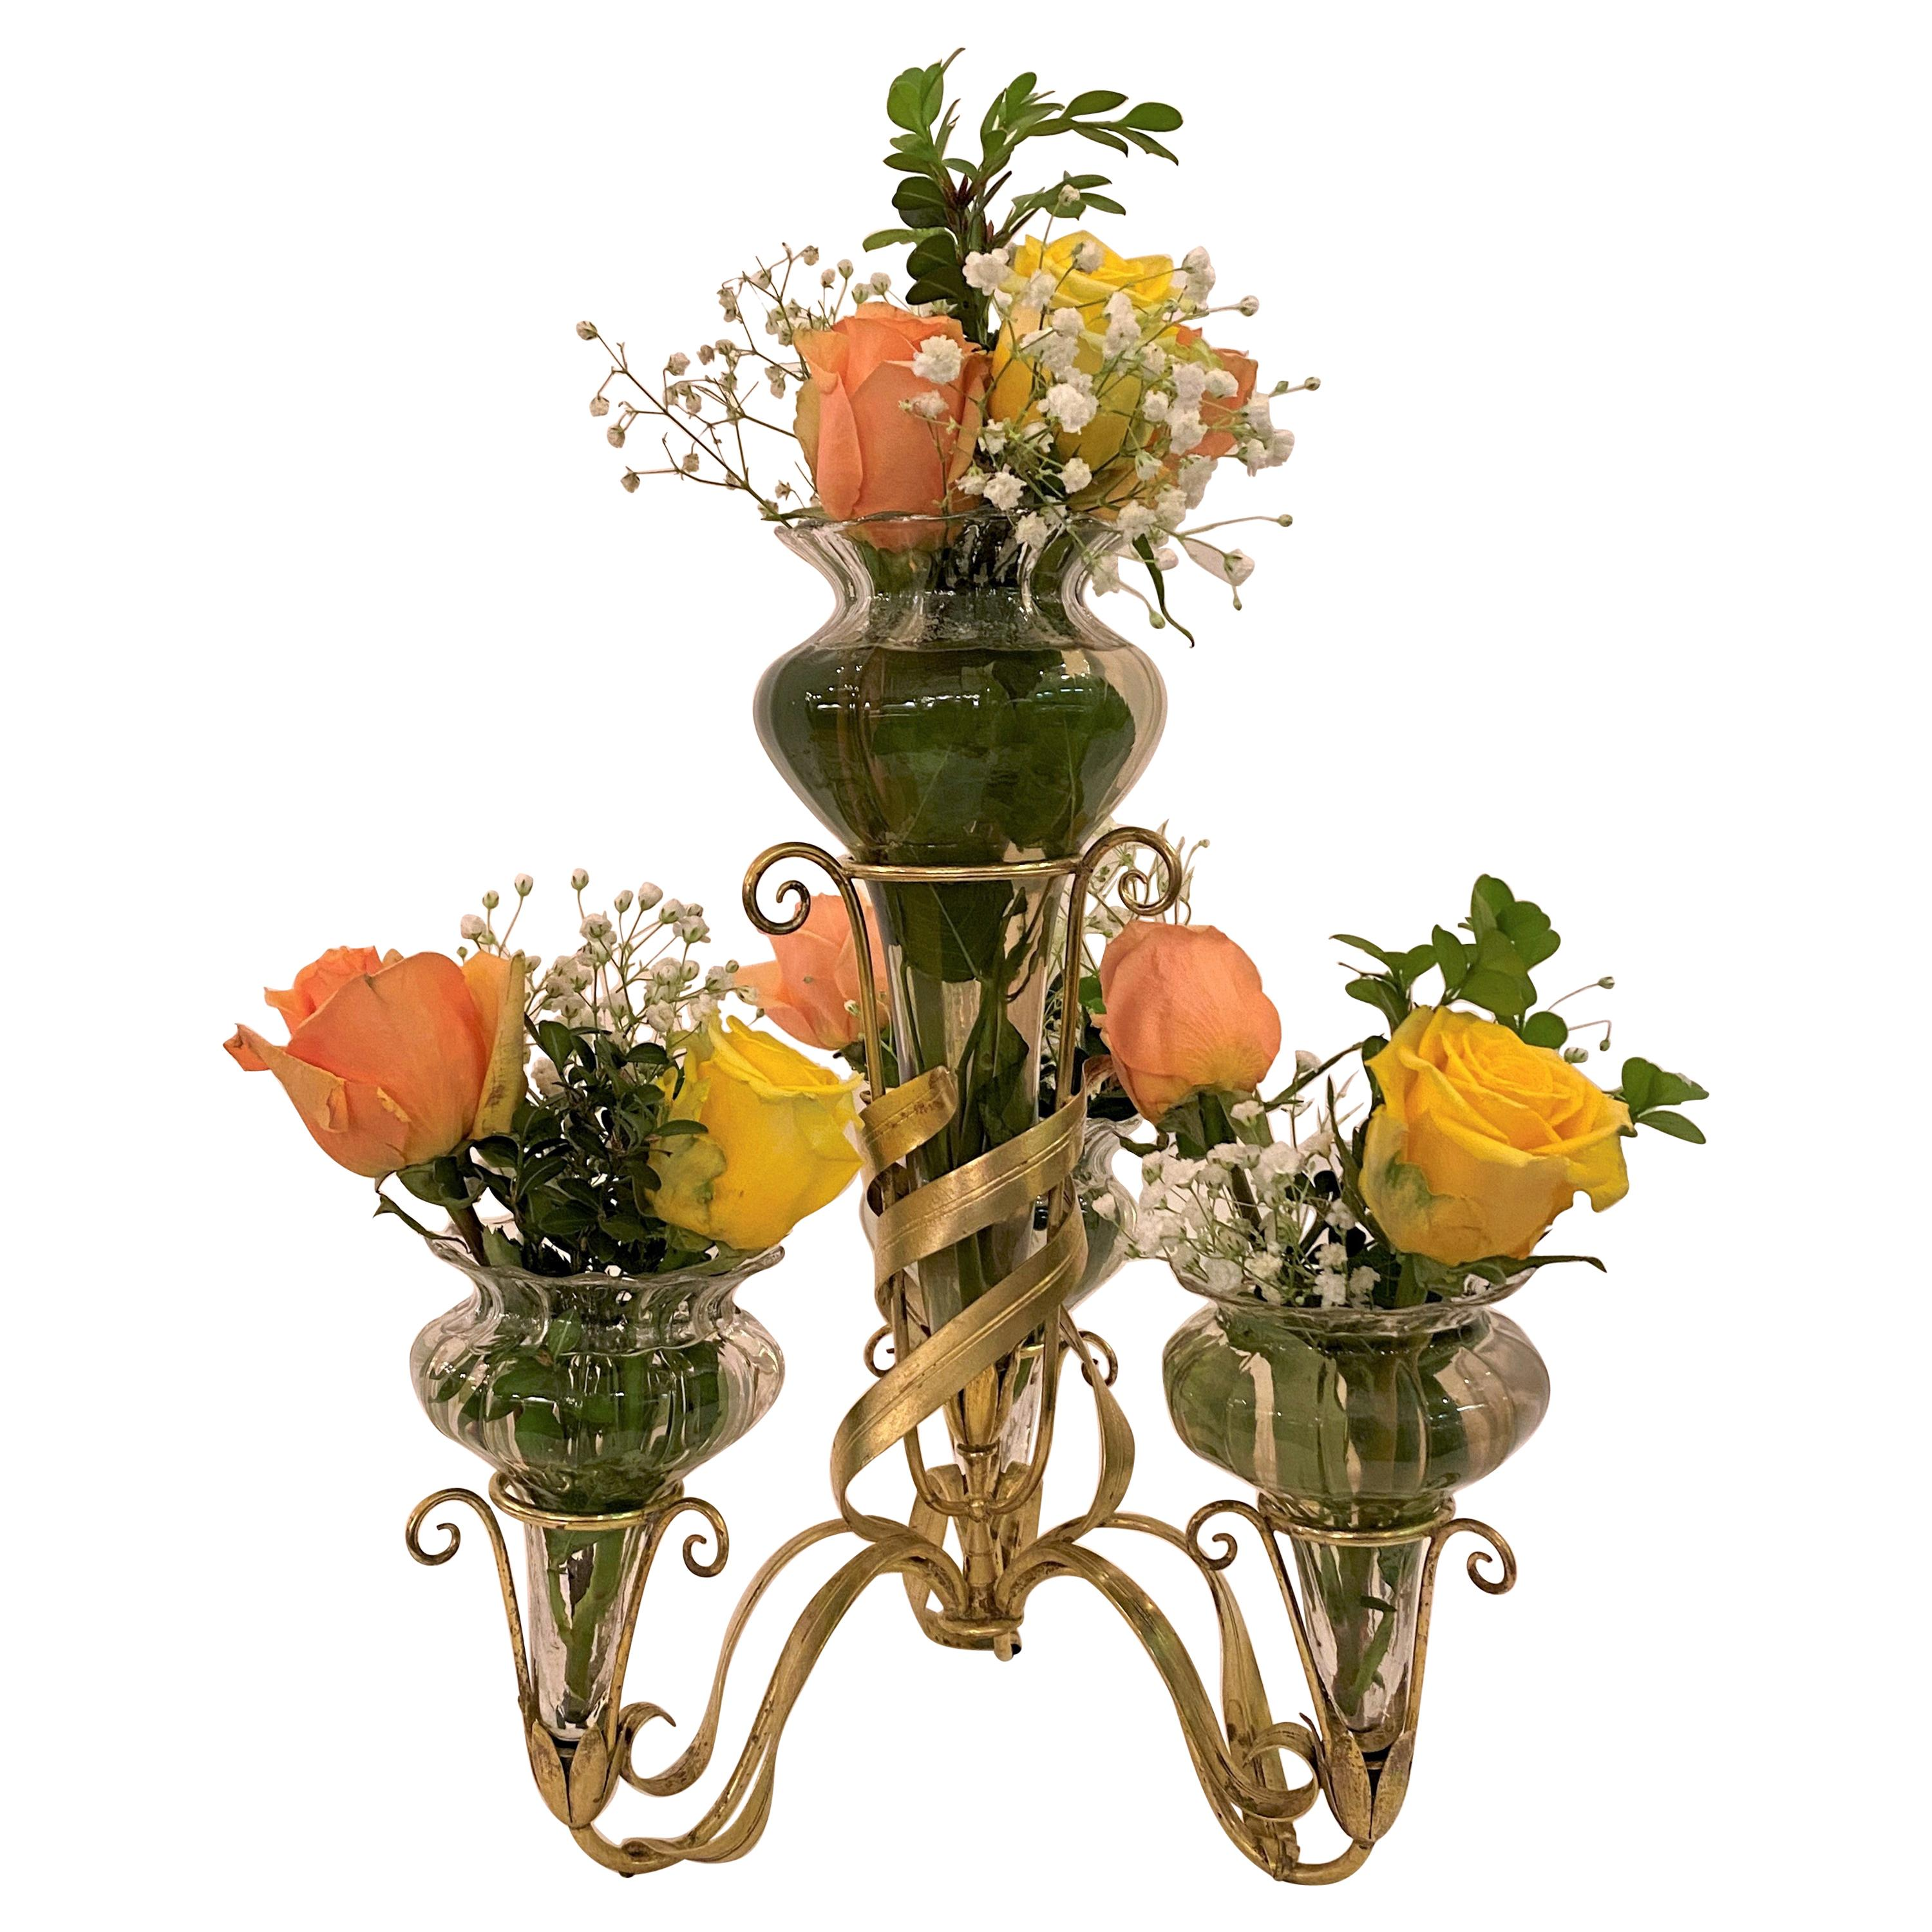 Antique French Belle Epoch Crystal and Gilt Floral Epergne, circa 1880